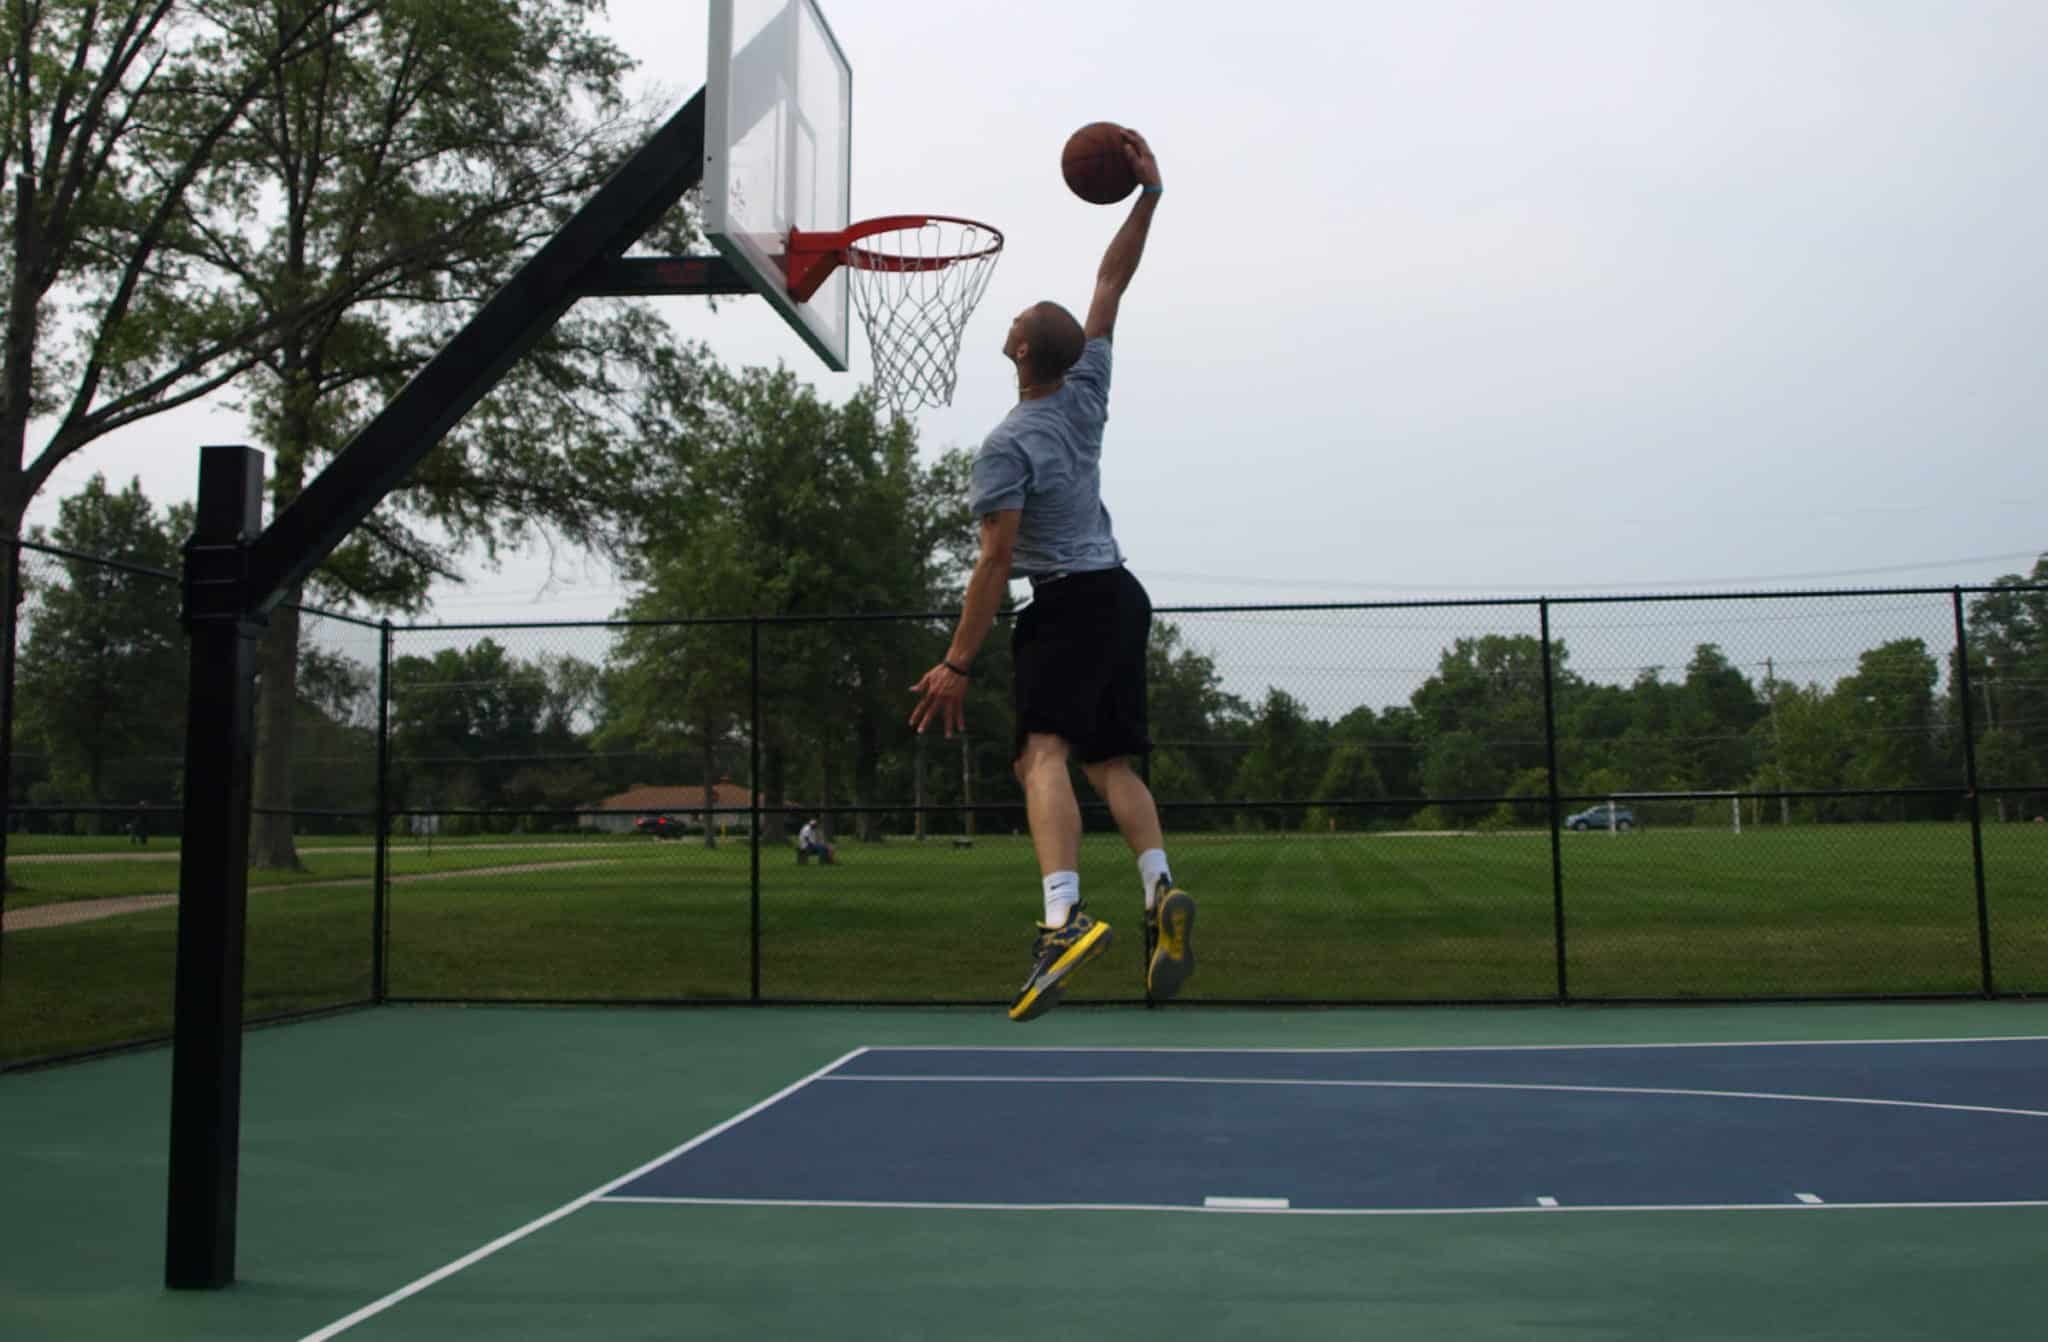 The Absolute Essentials of Vertical Jump, and Athletic Power Training - Just Fly Sports Performance